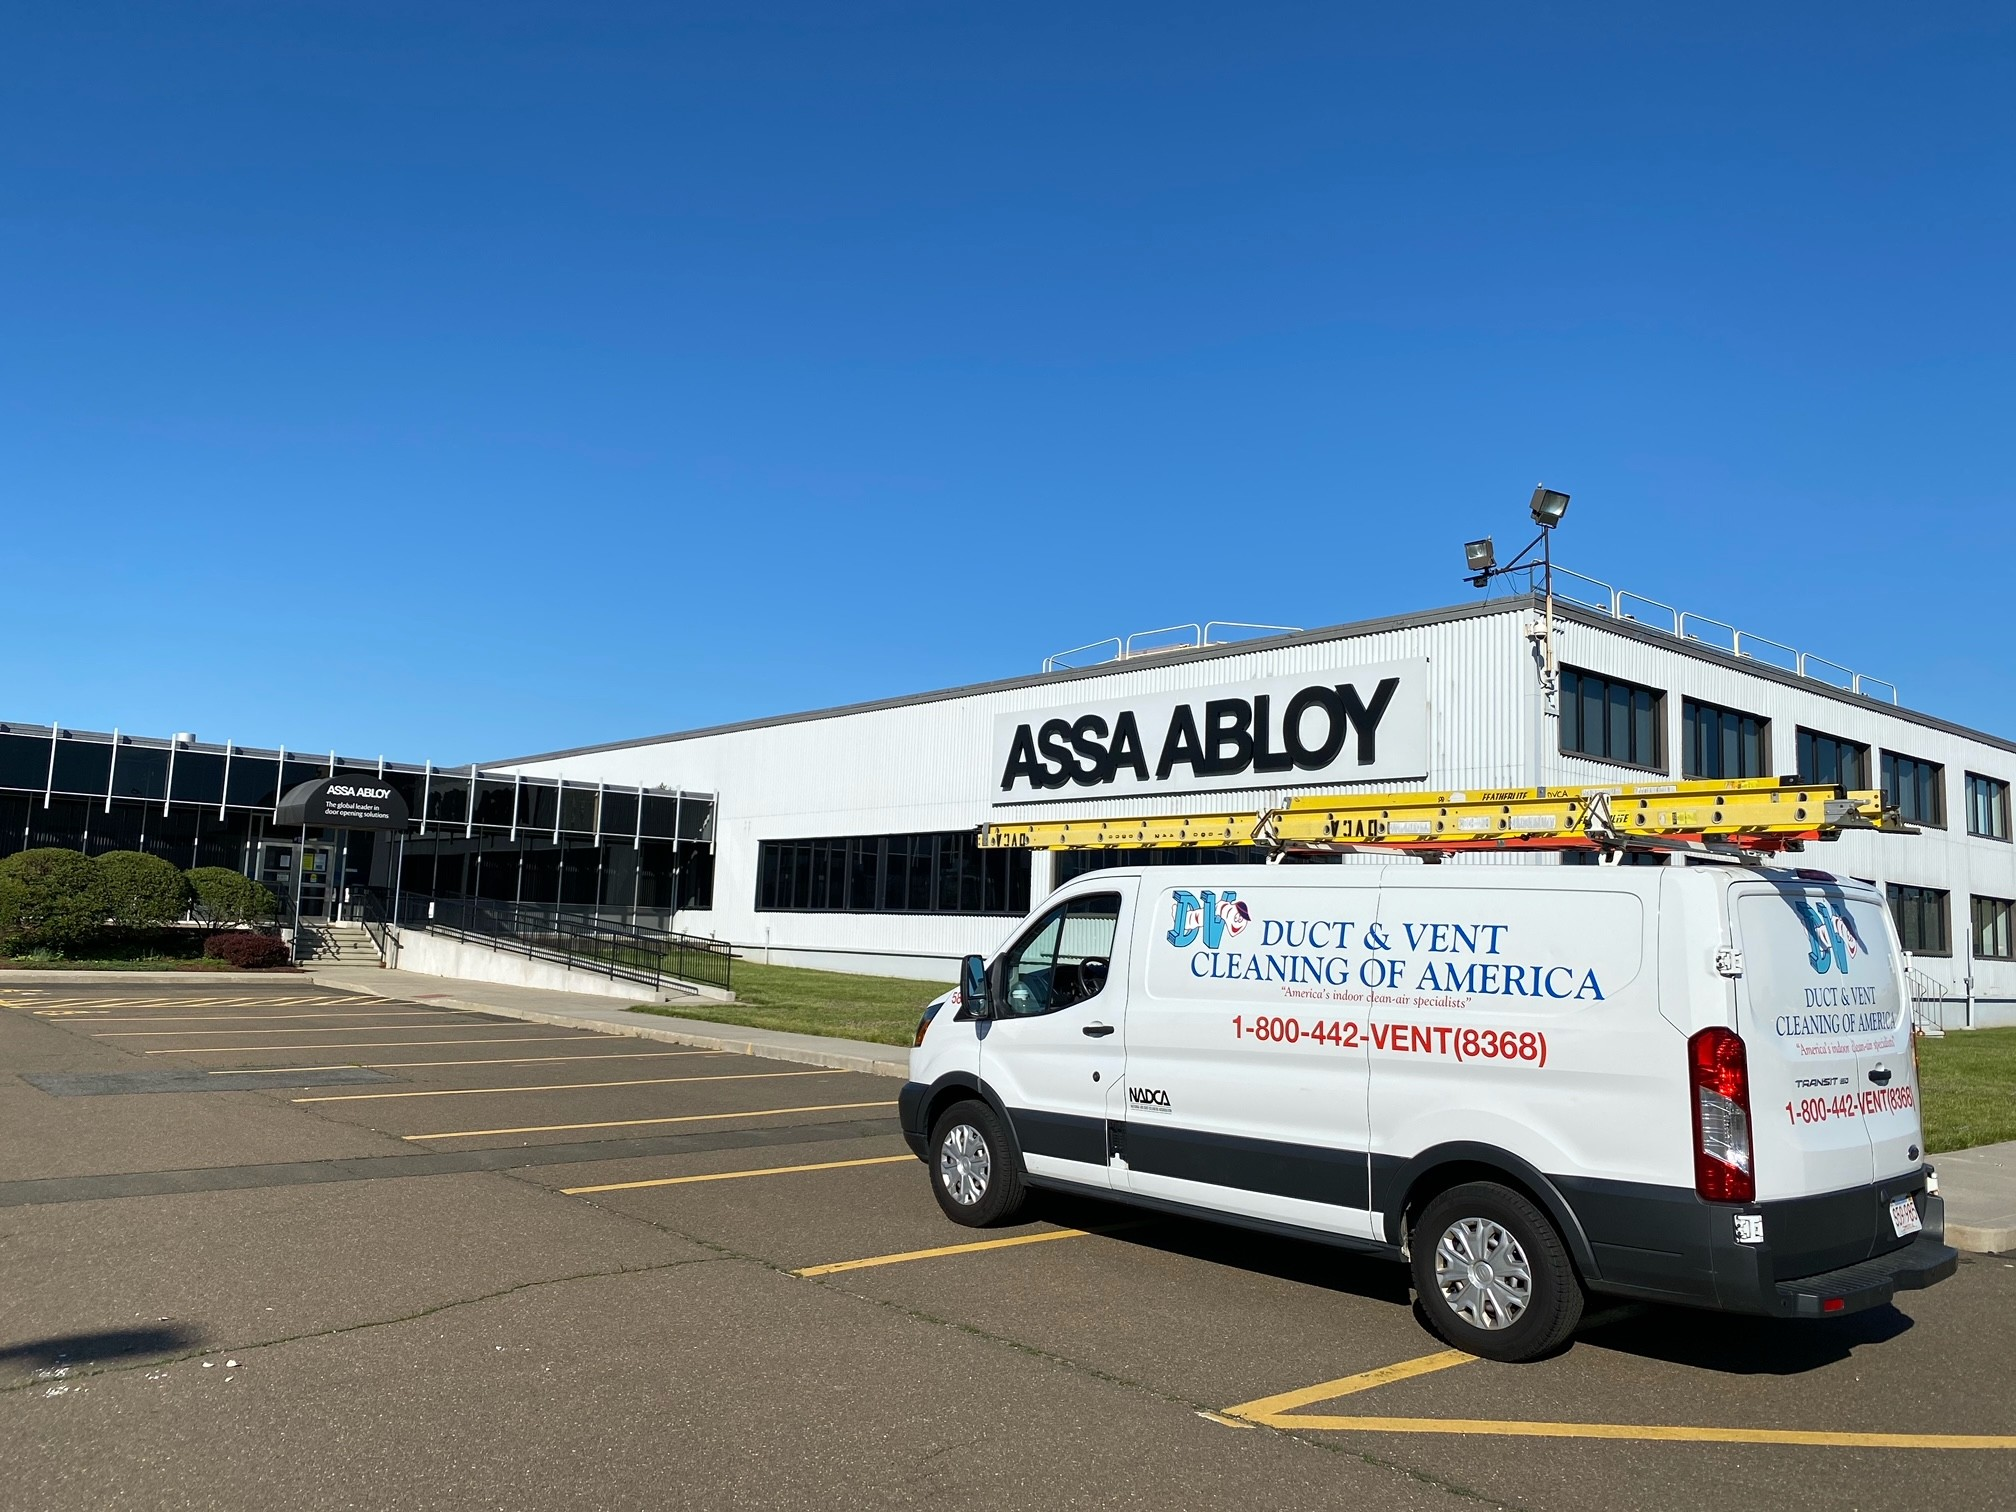 Sargent Manufacturing Assa Abloy – New Haven, CT image002.jpg